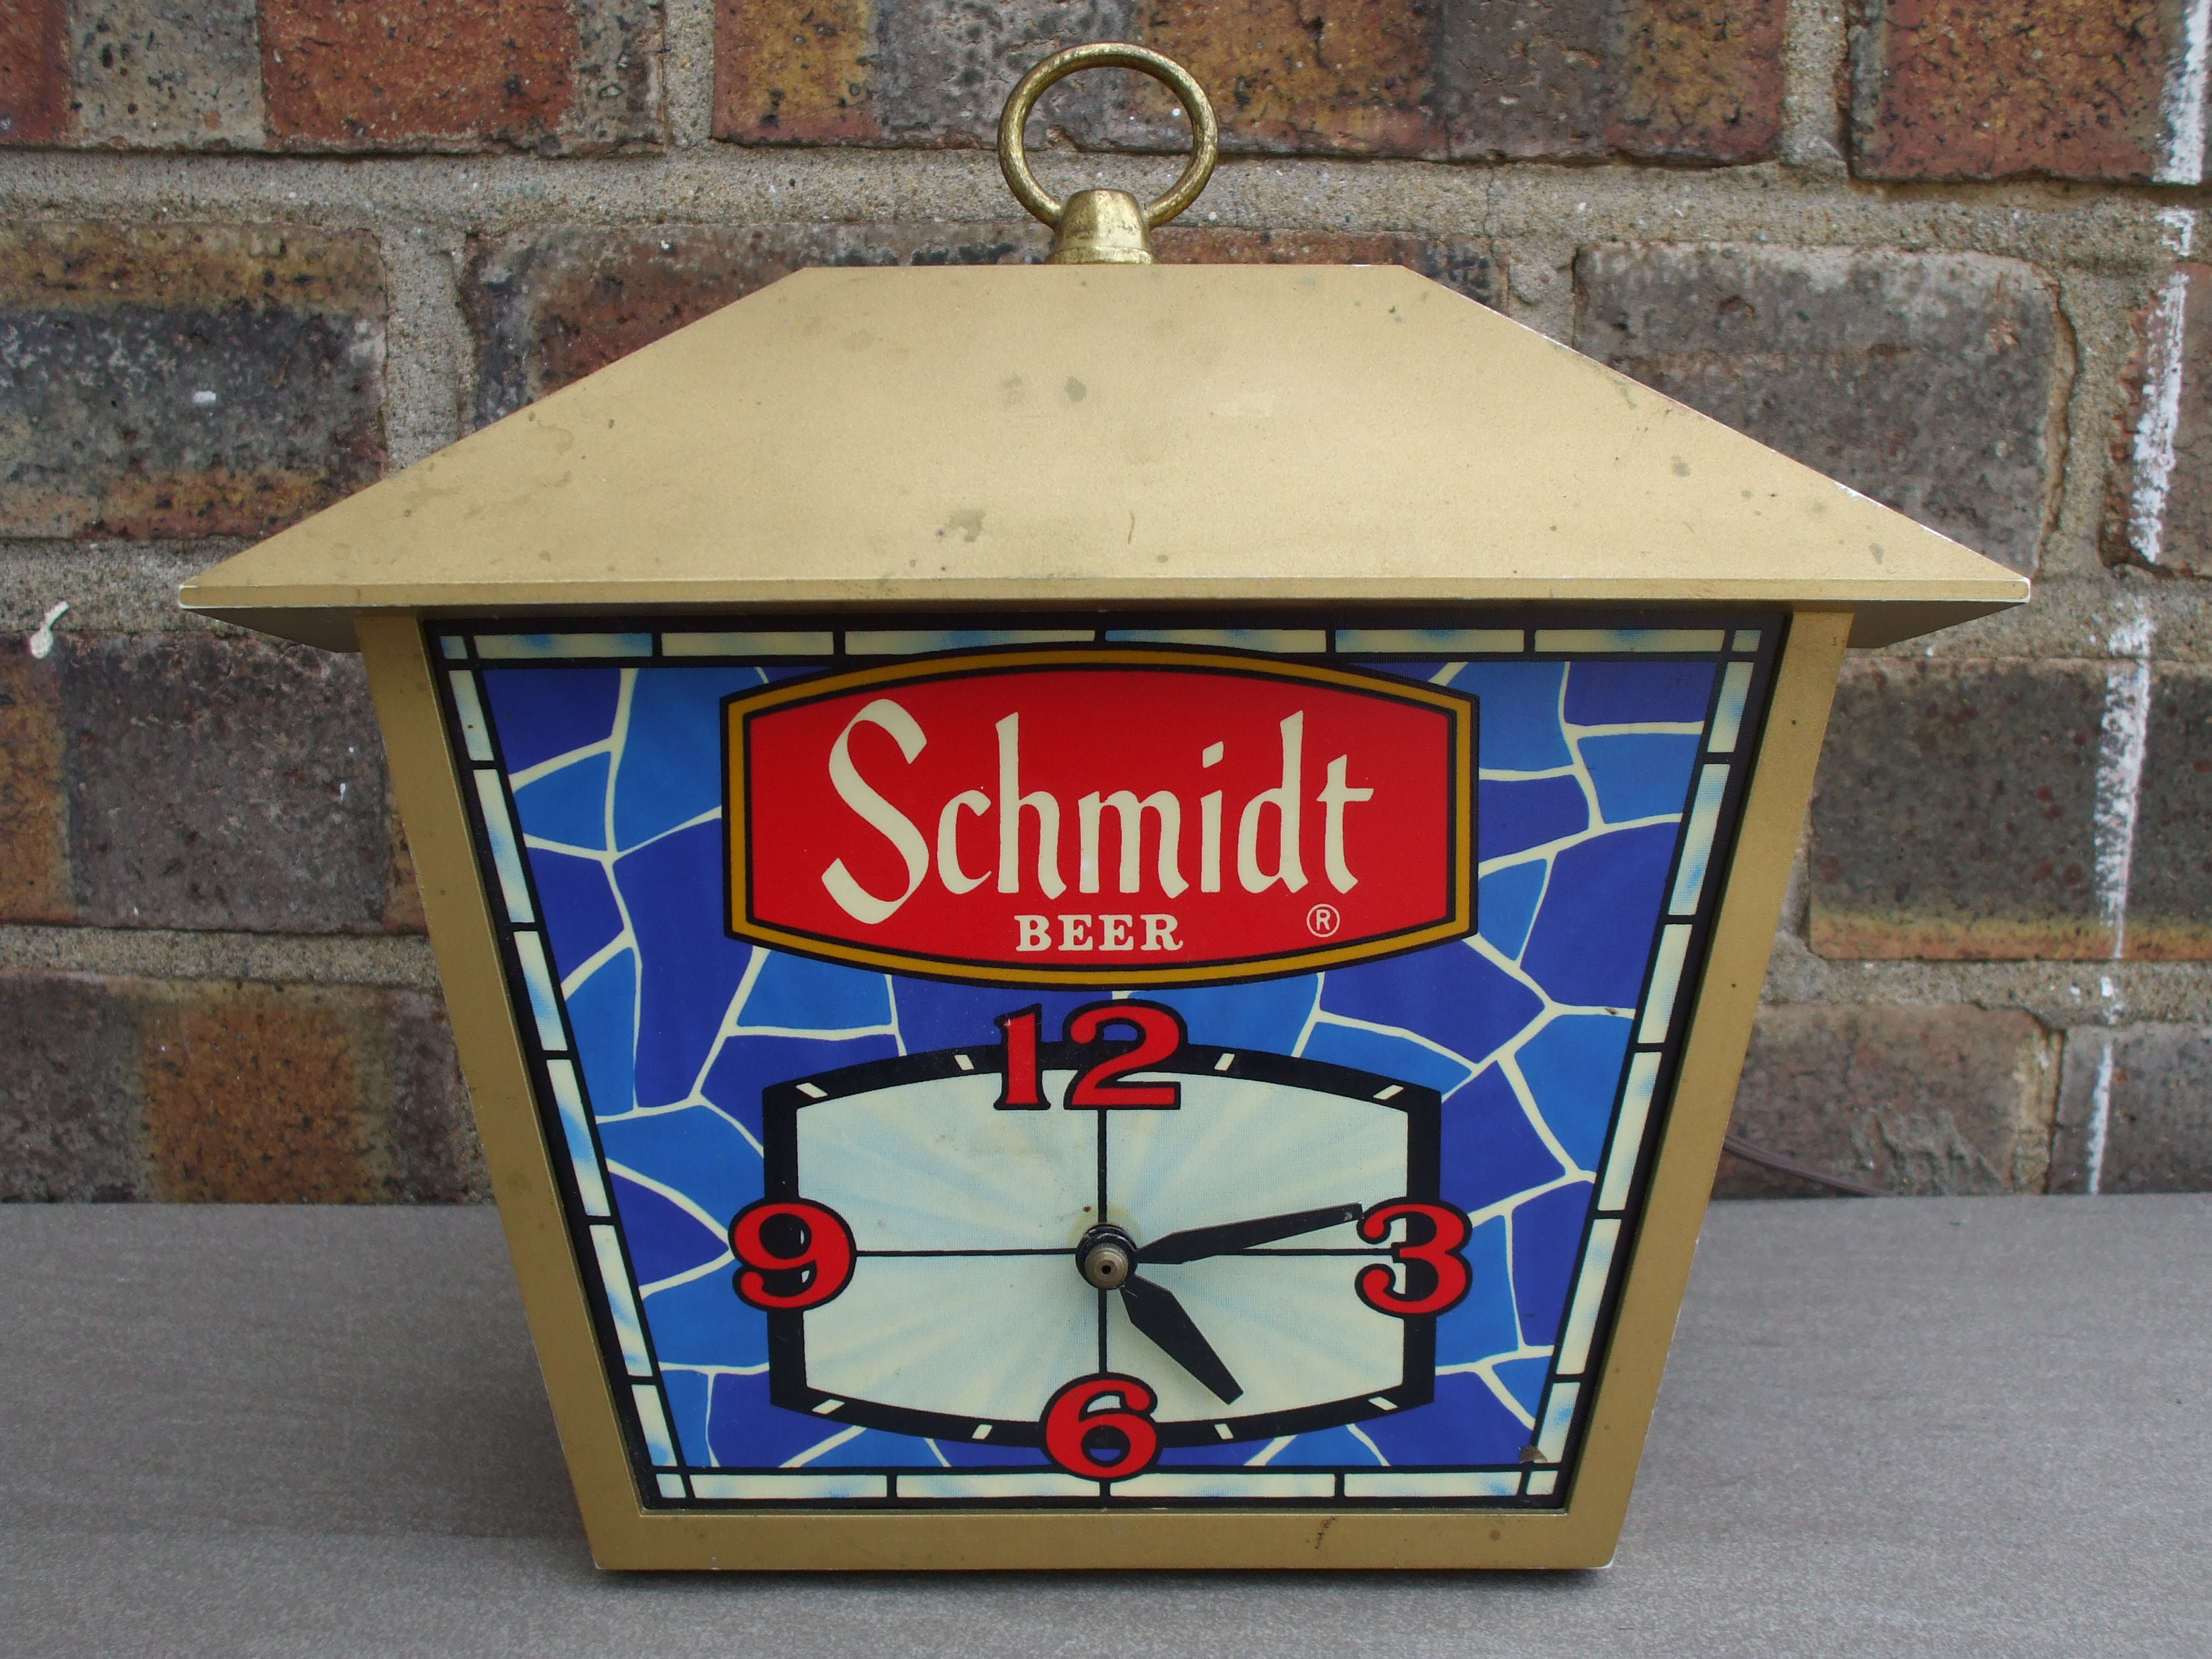 Schmidt Beer clock - era unknown